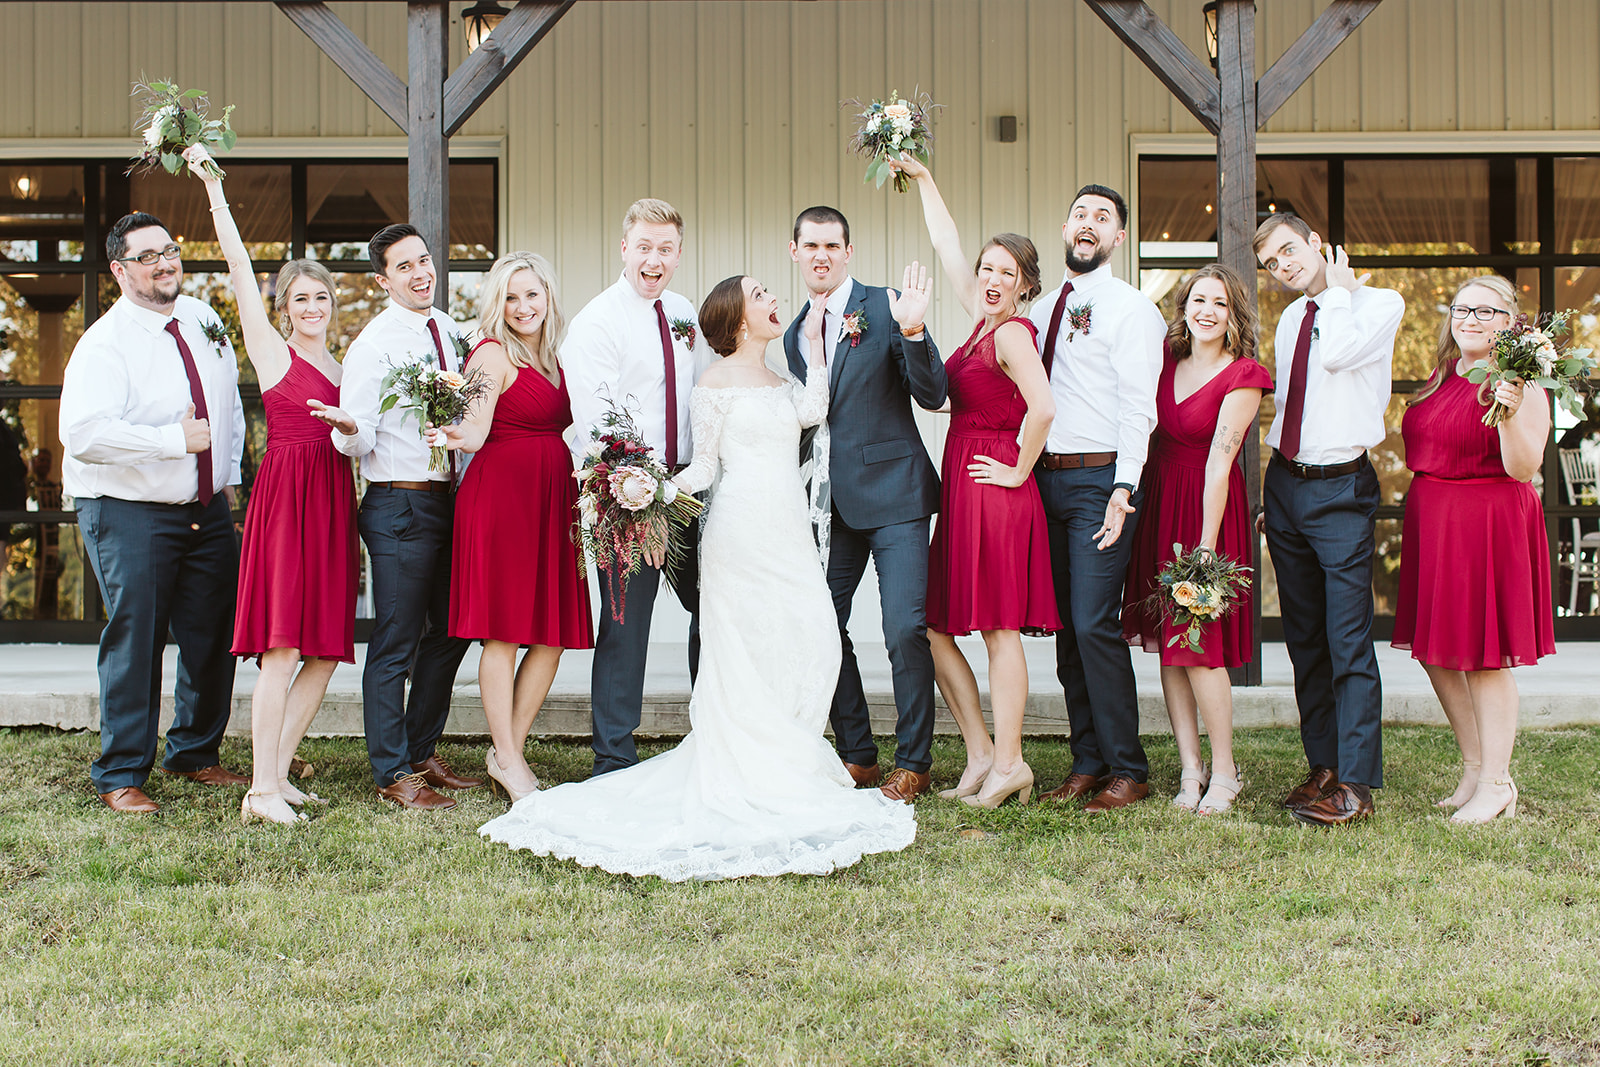 Tulsa Wedding Venue White Barn Dream Point Ranch 34.jpg